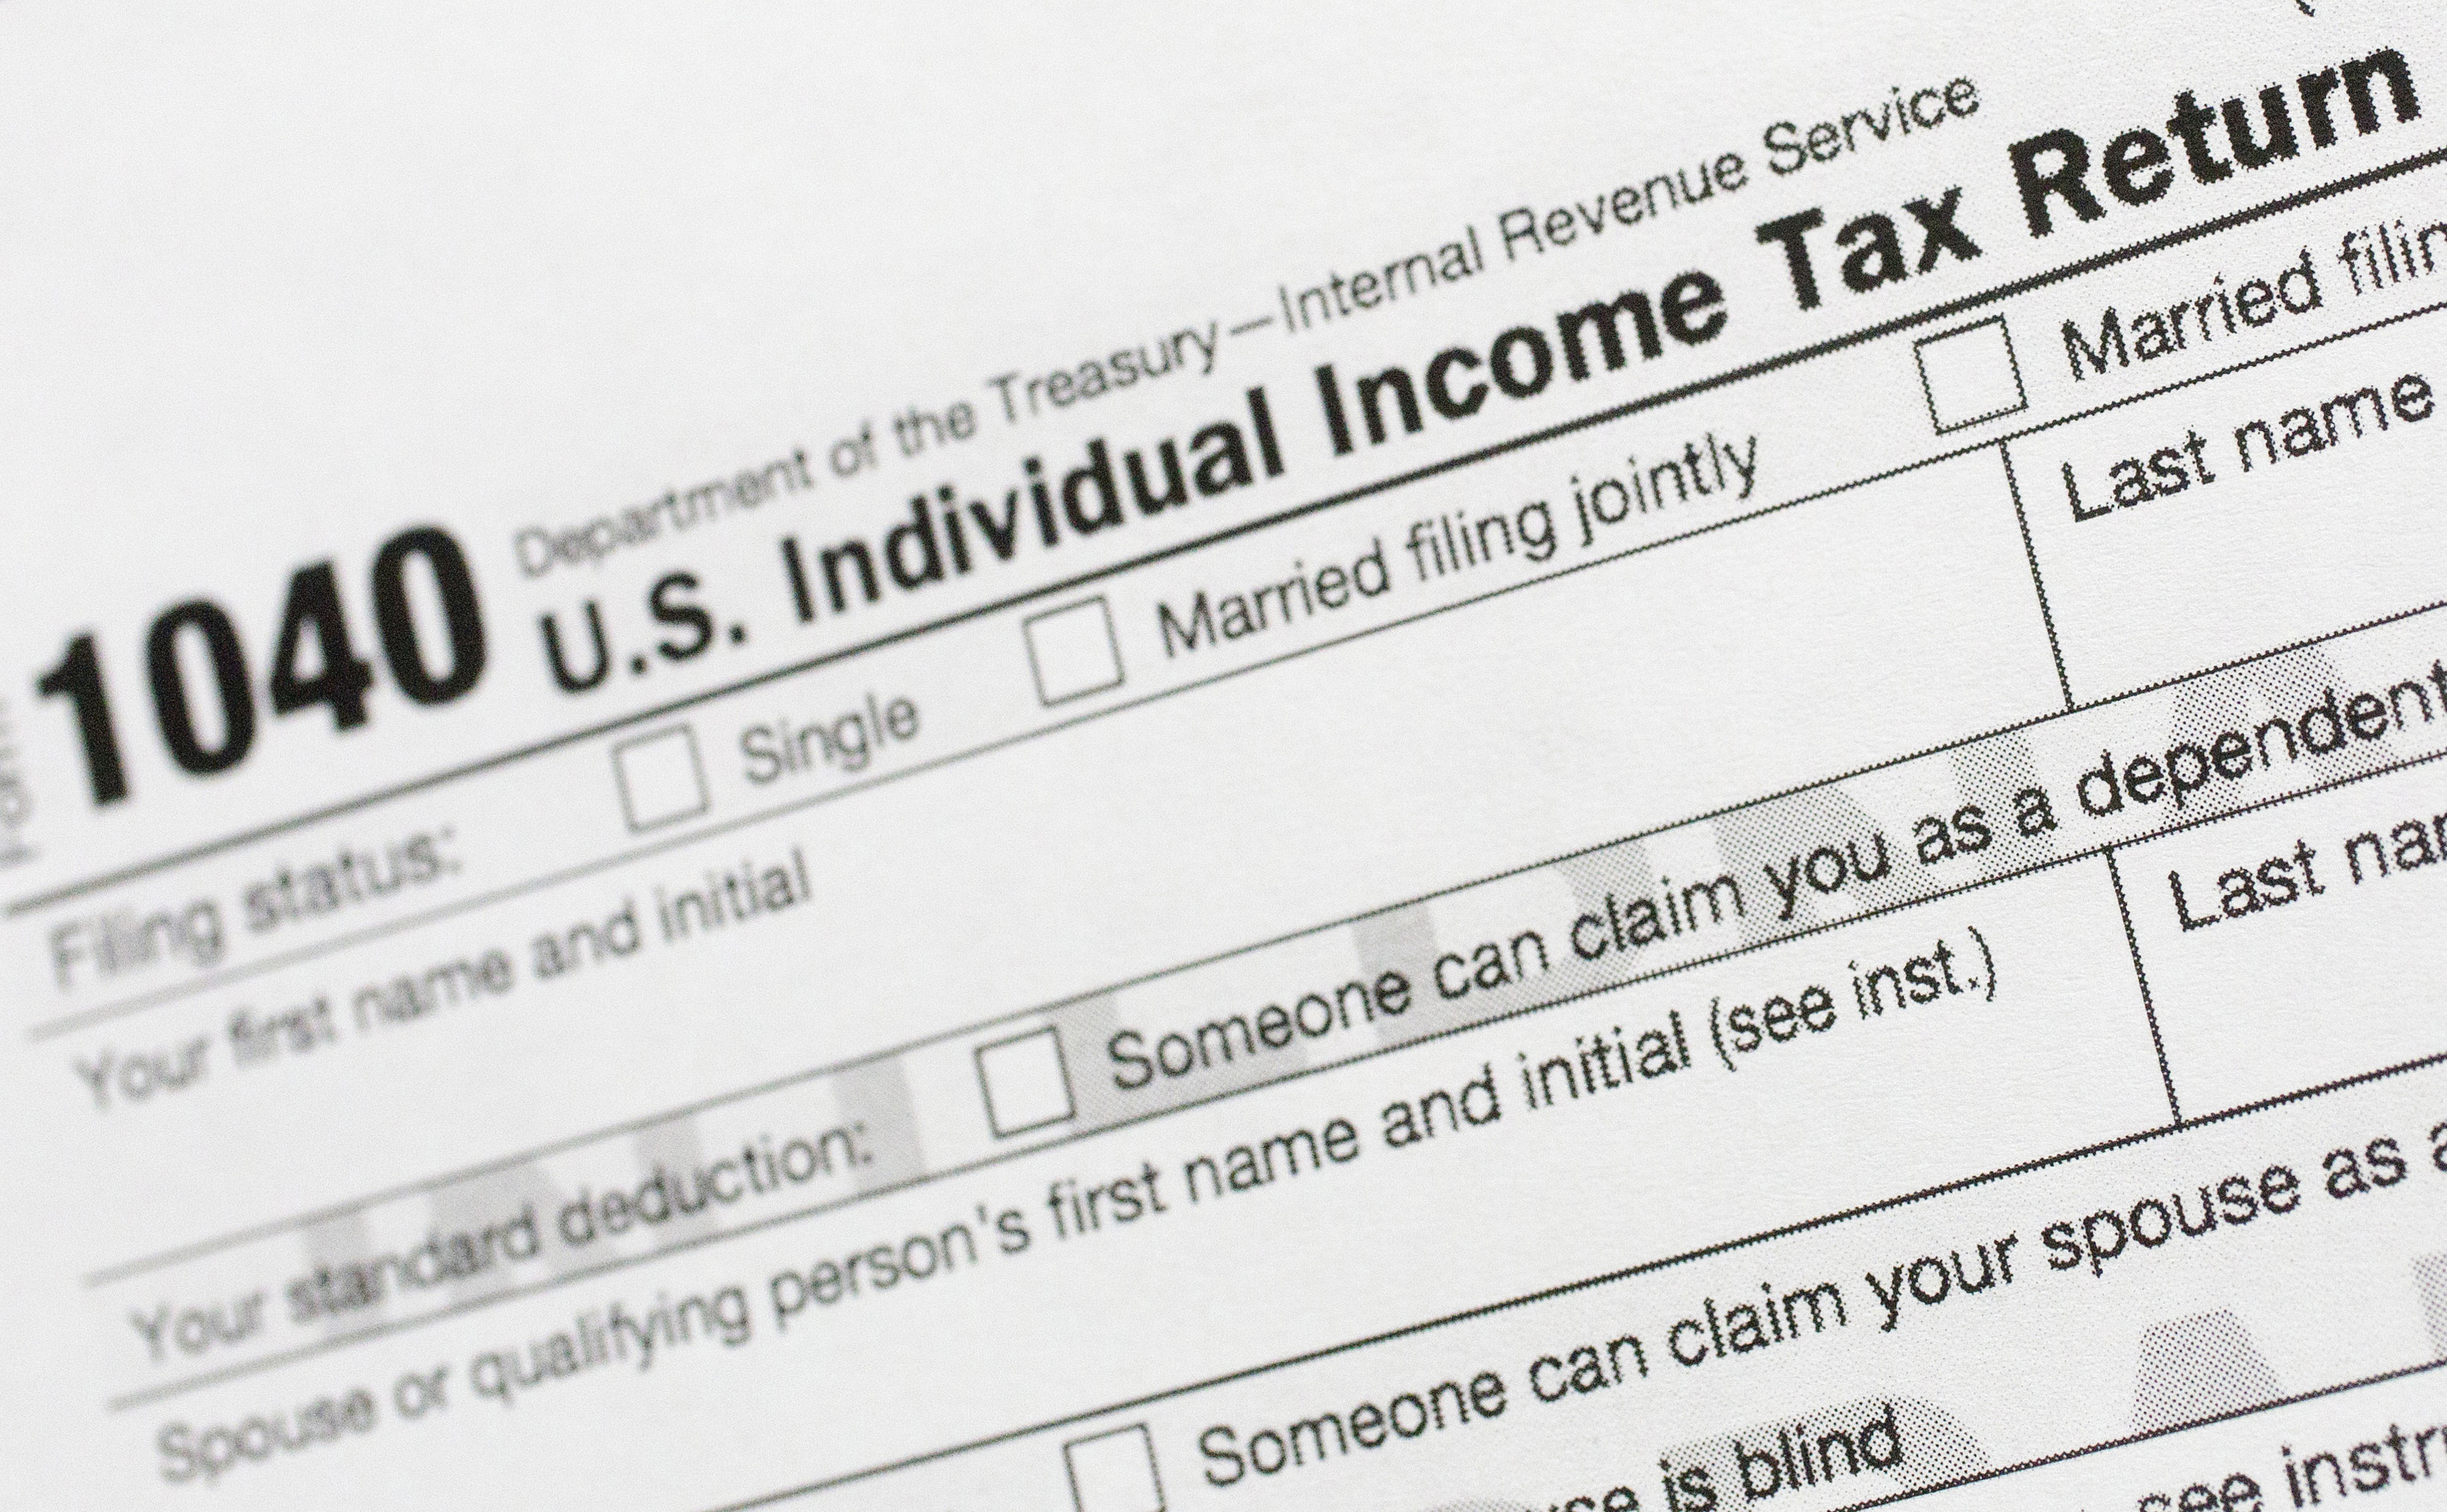 Millions Of Irs Income Tax Refund Checks Slowed With Shutdown